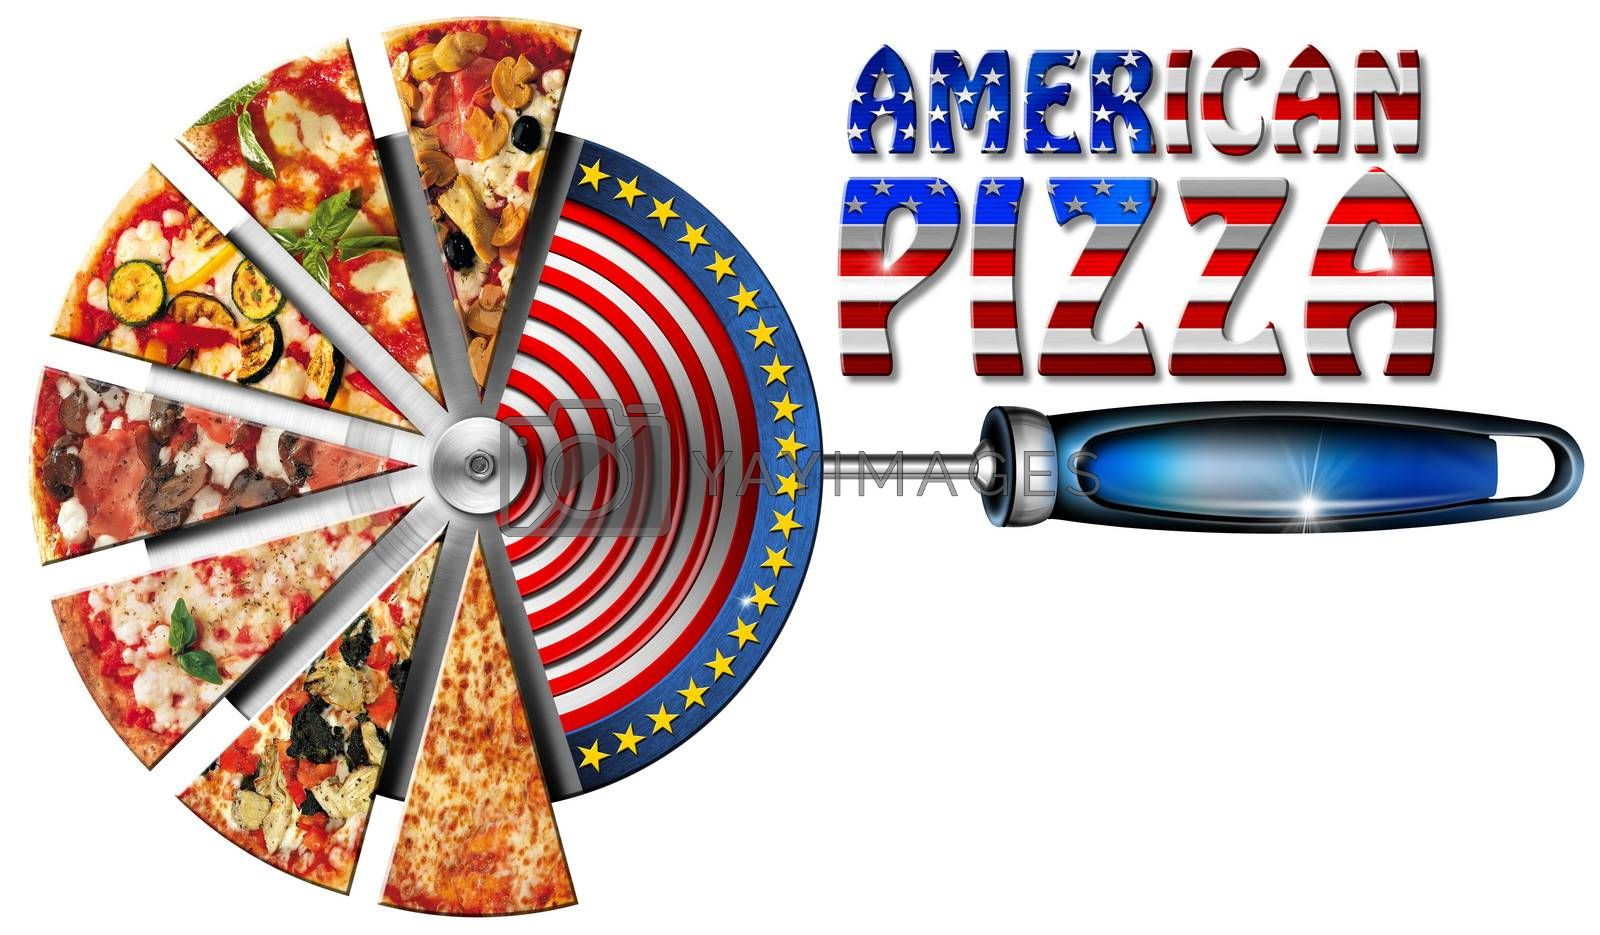 Royalty free image of American Pizza on Cutter for Pizza by catalby